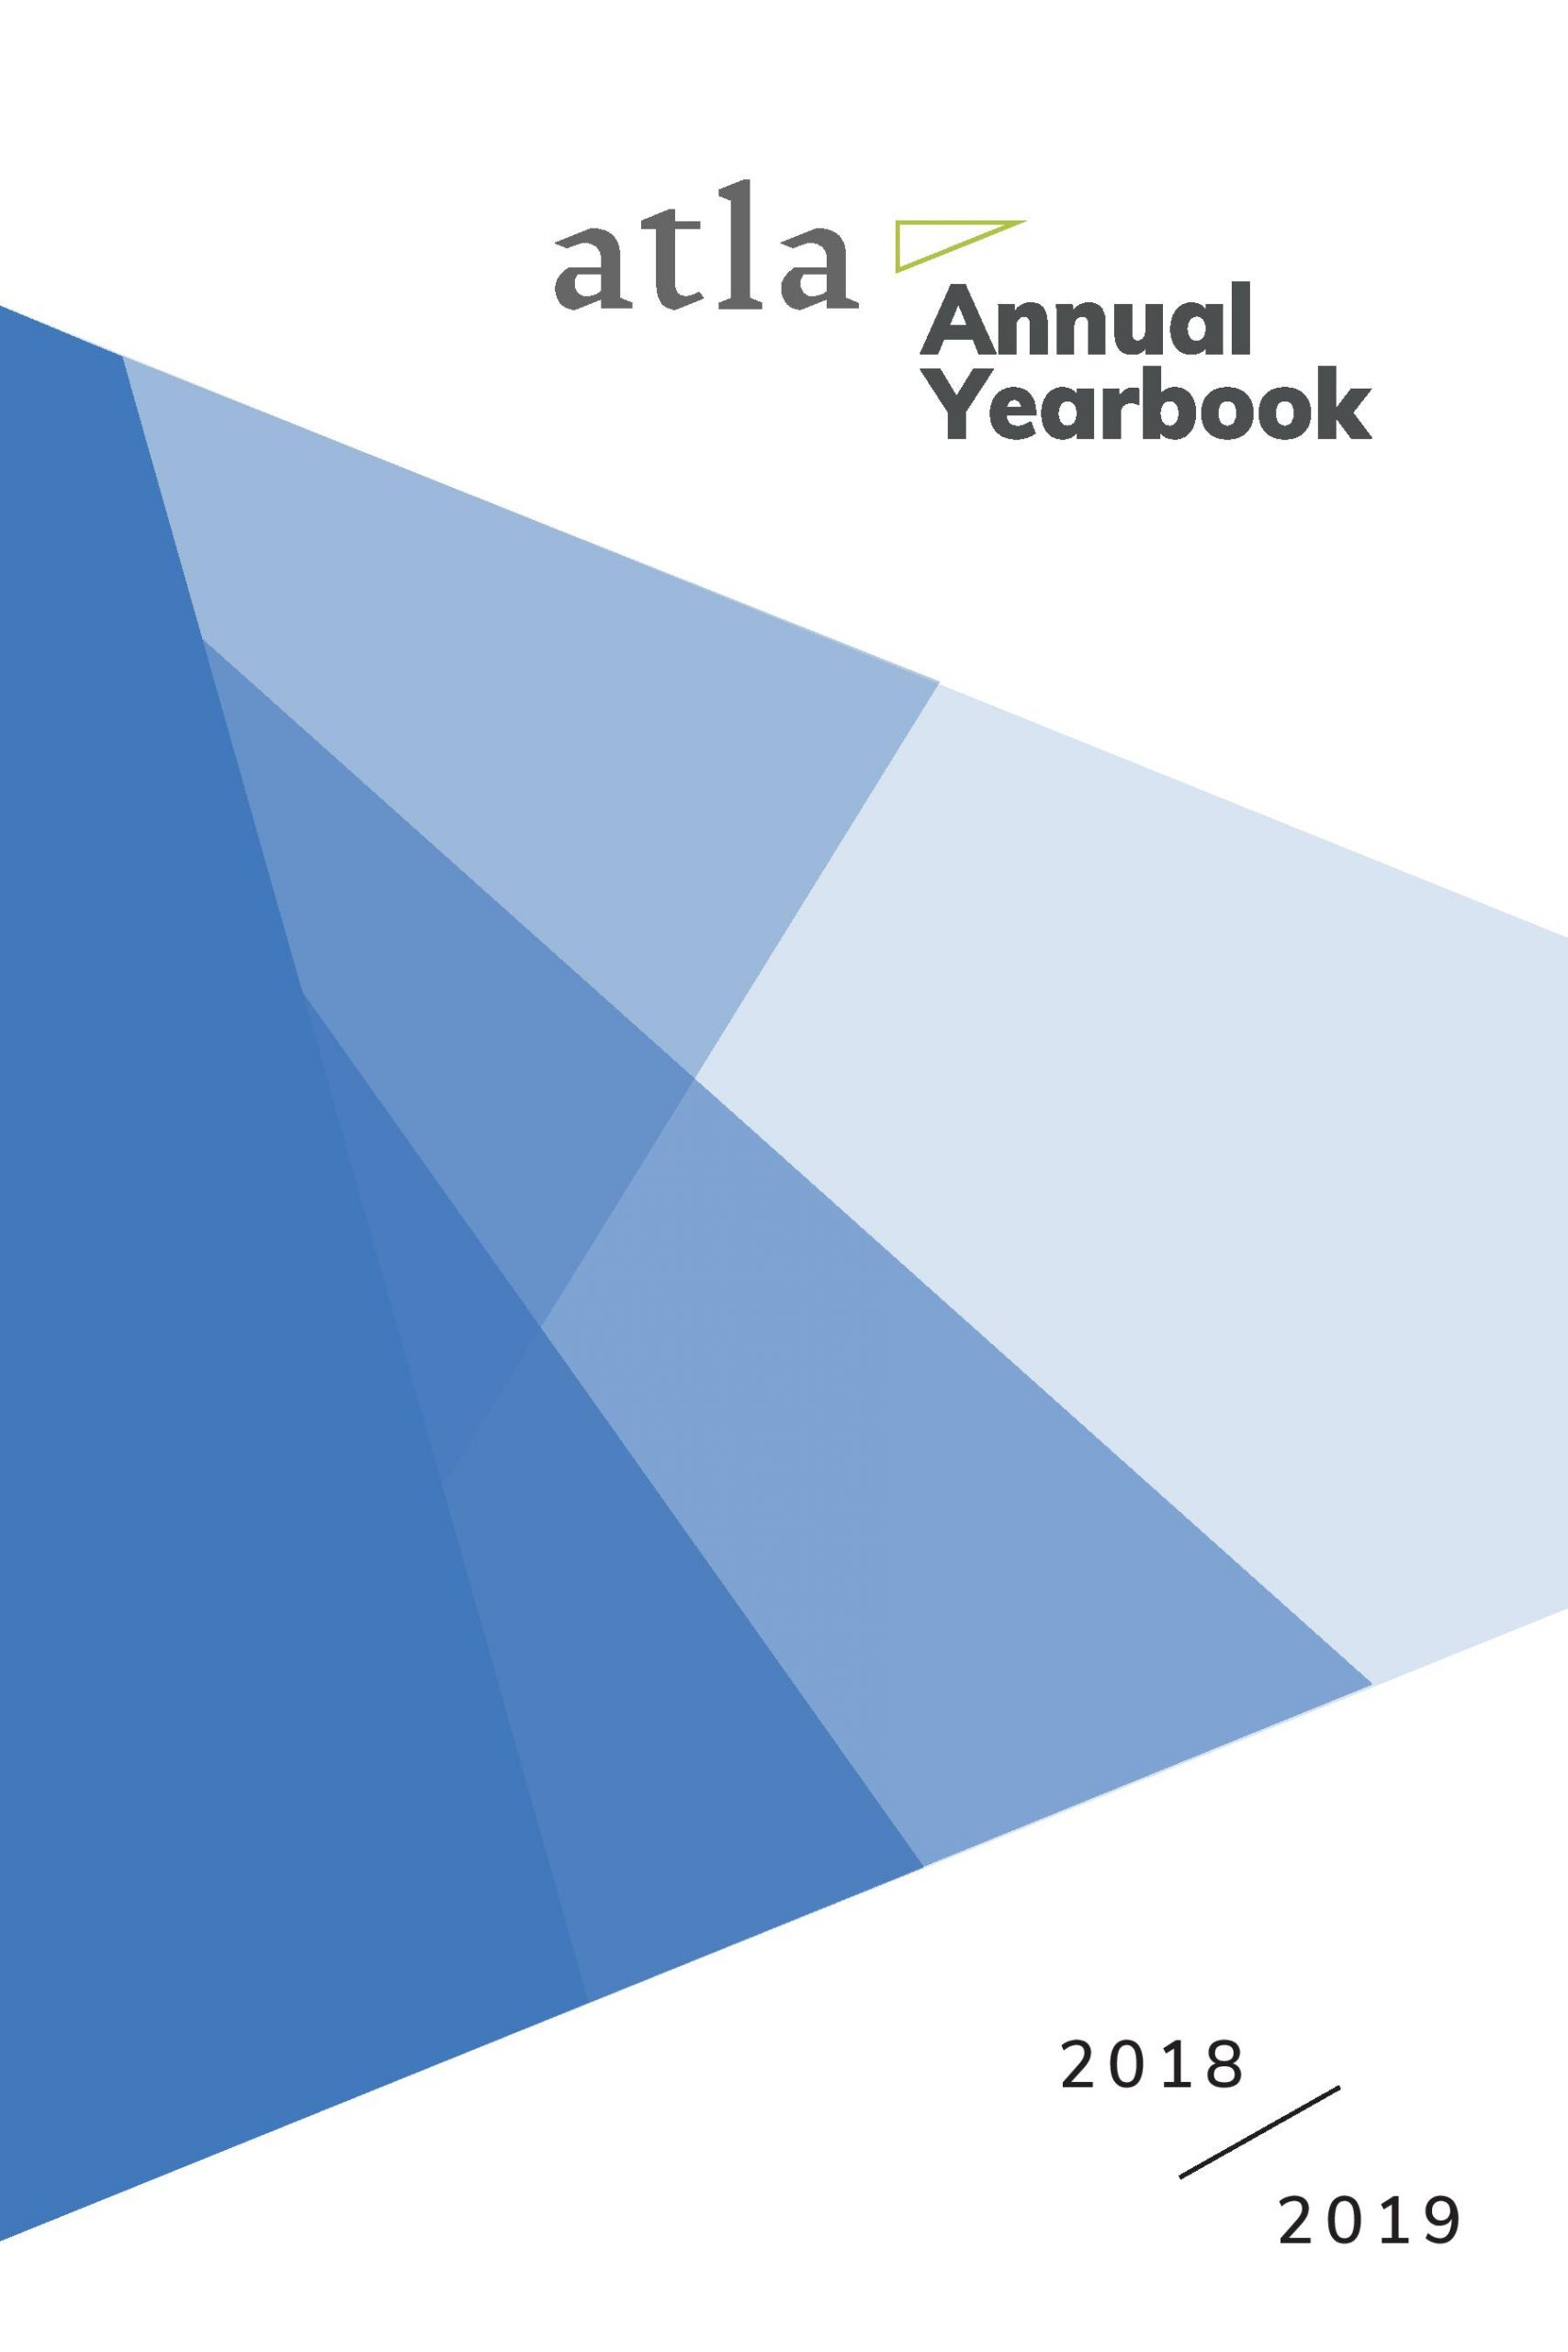 2019 Atla Annual Yearbook